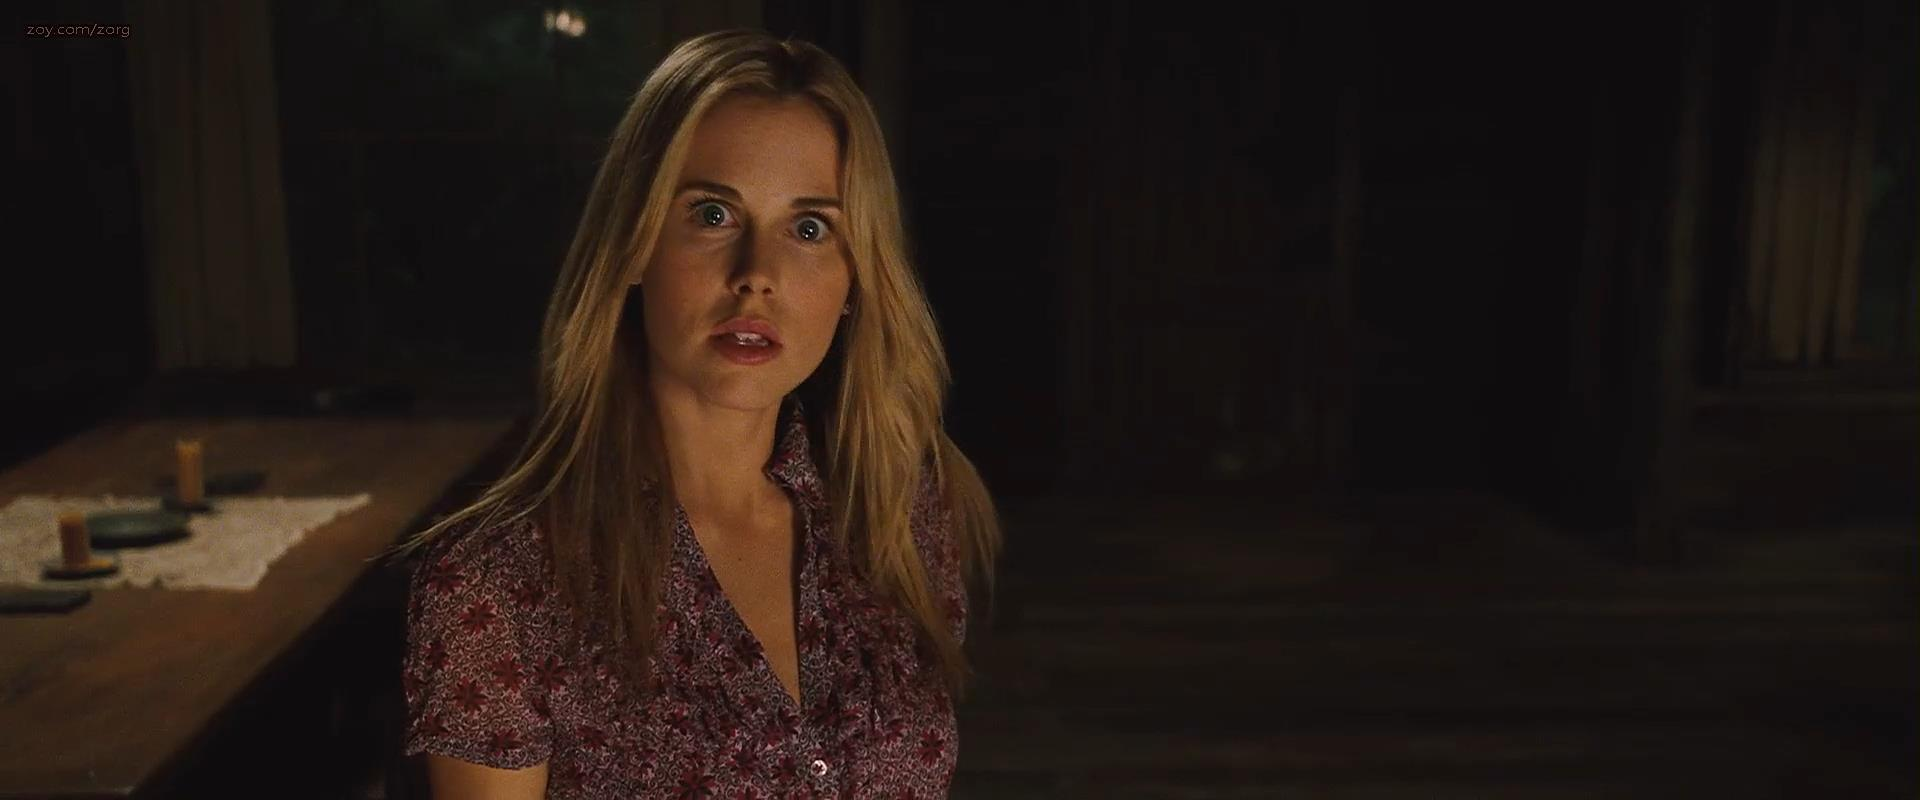 Anna Hutchison nude topless sex outdoor from - The Cabin in the Woods (2012) hd1080p (5)